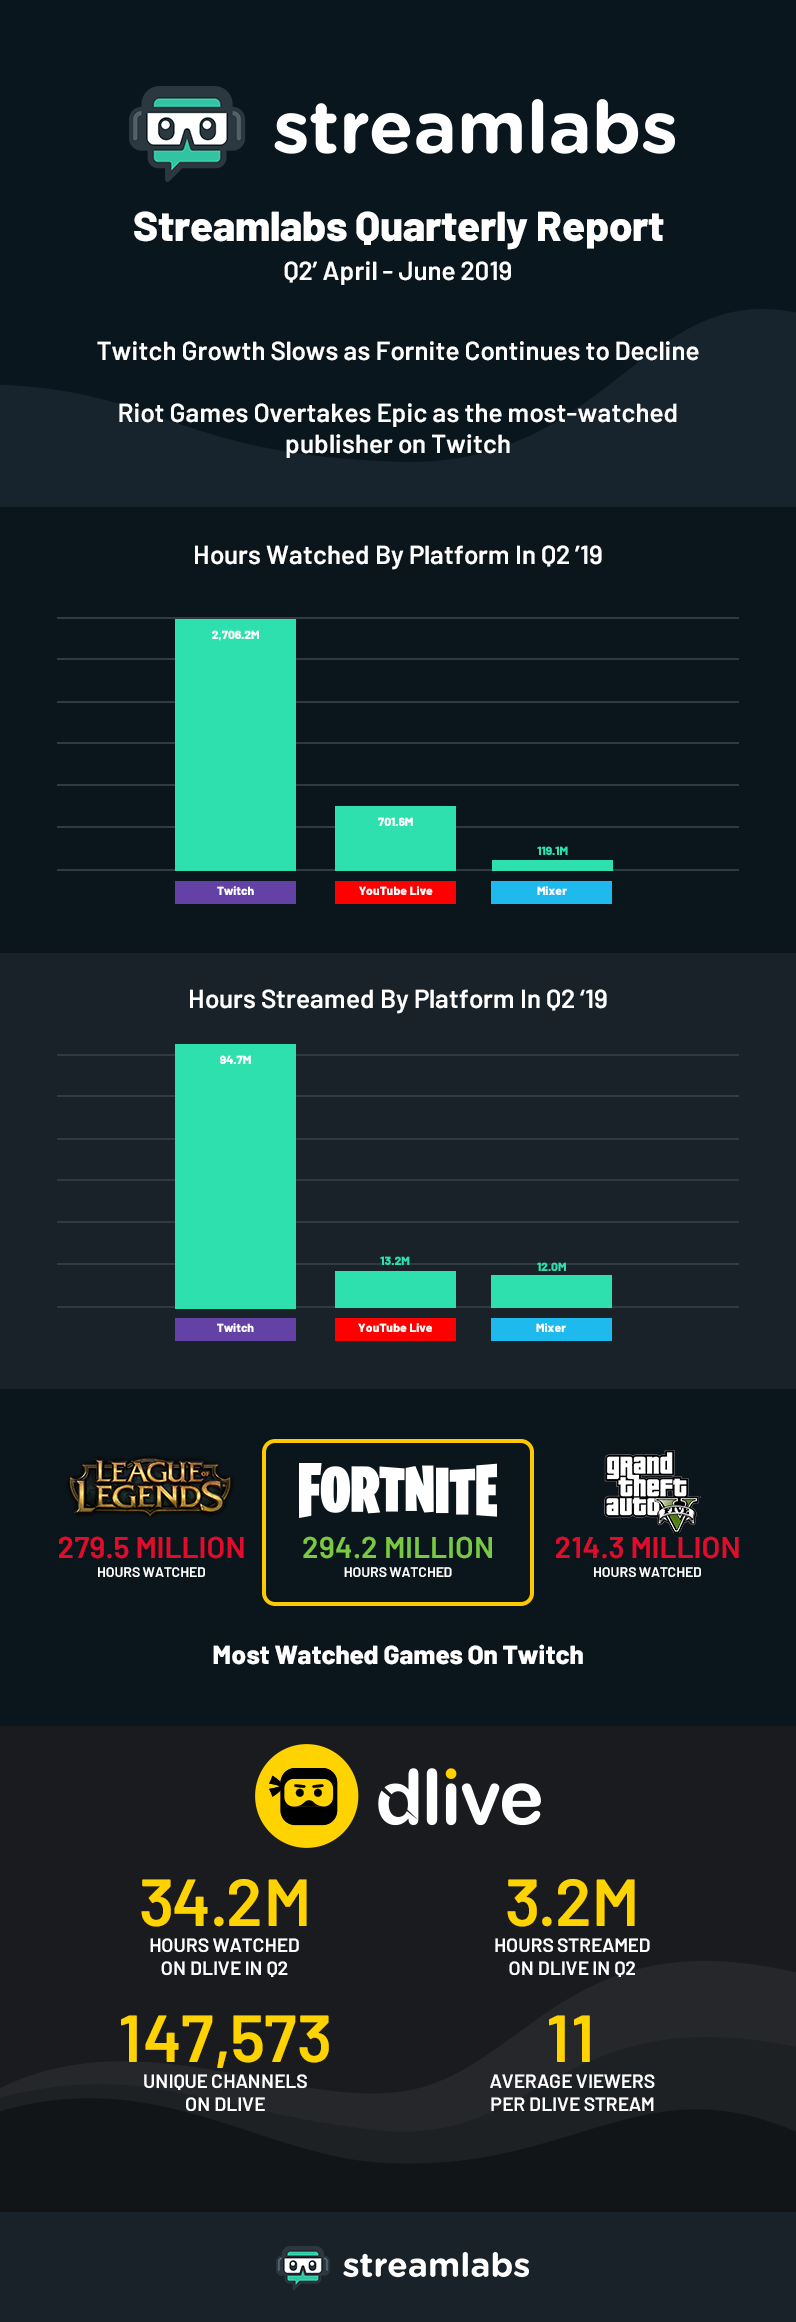 Source: Newzoo & Streamlabs